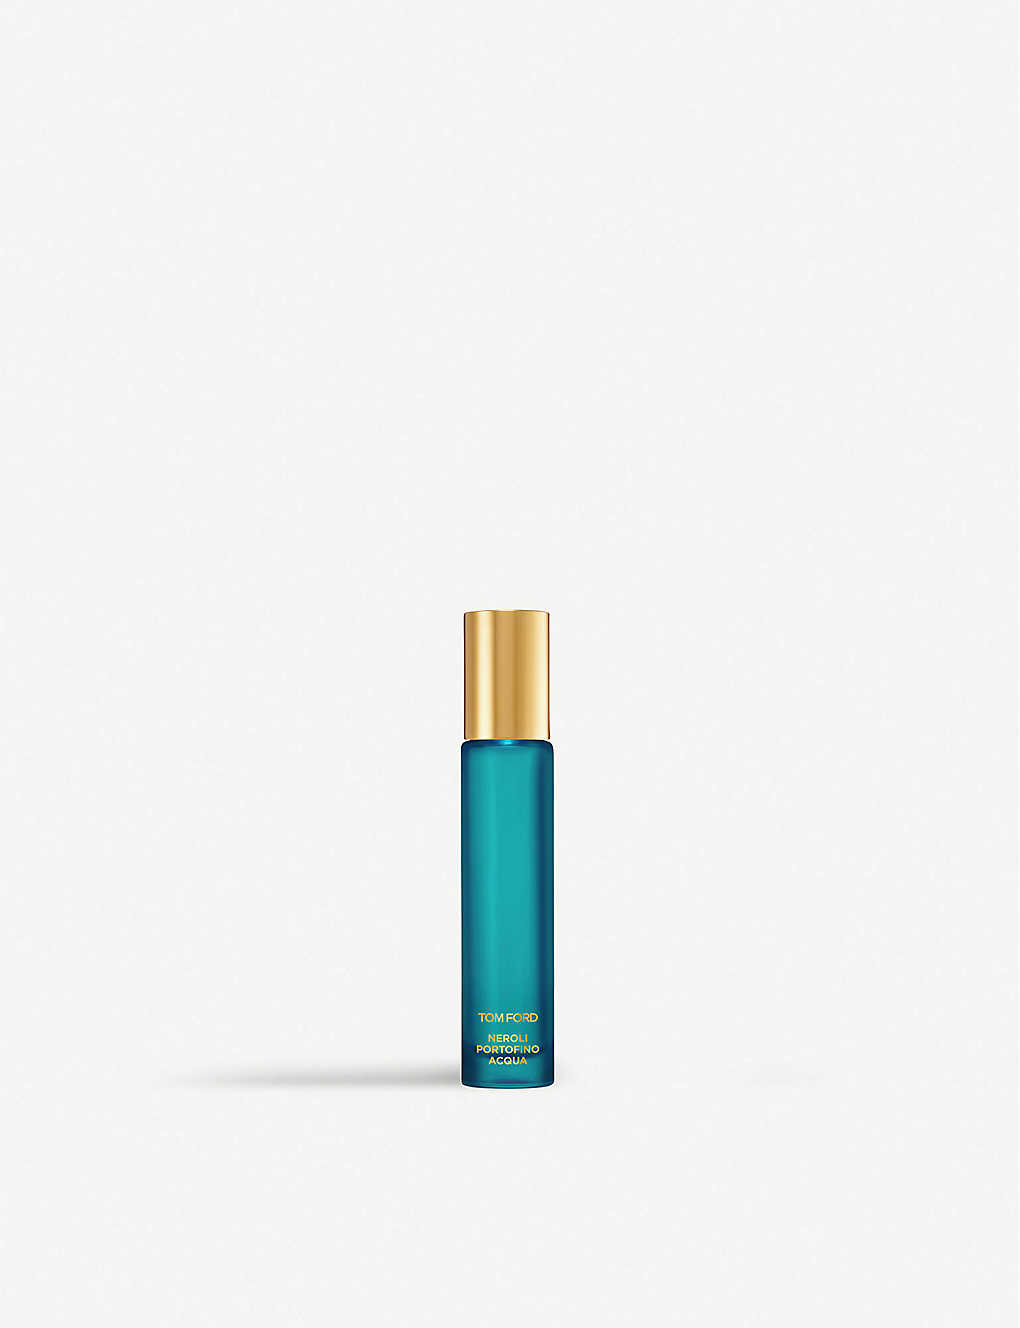 TOM FORD: Neroli Portofino Acqua eau de toilette 10ml